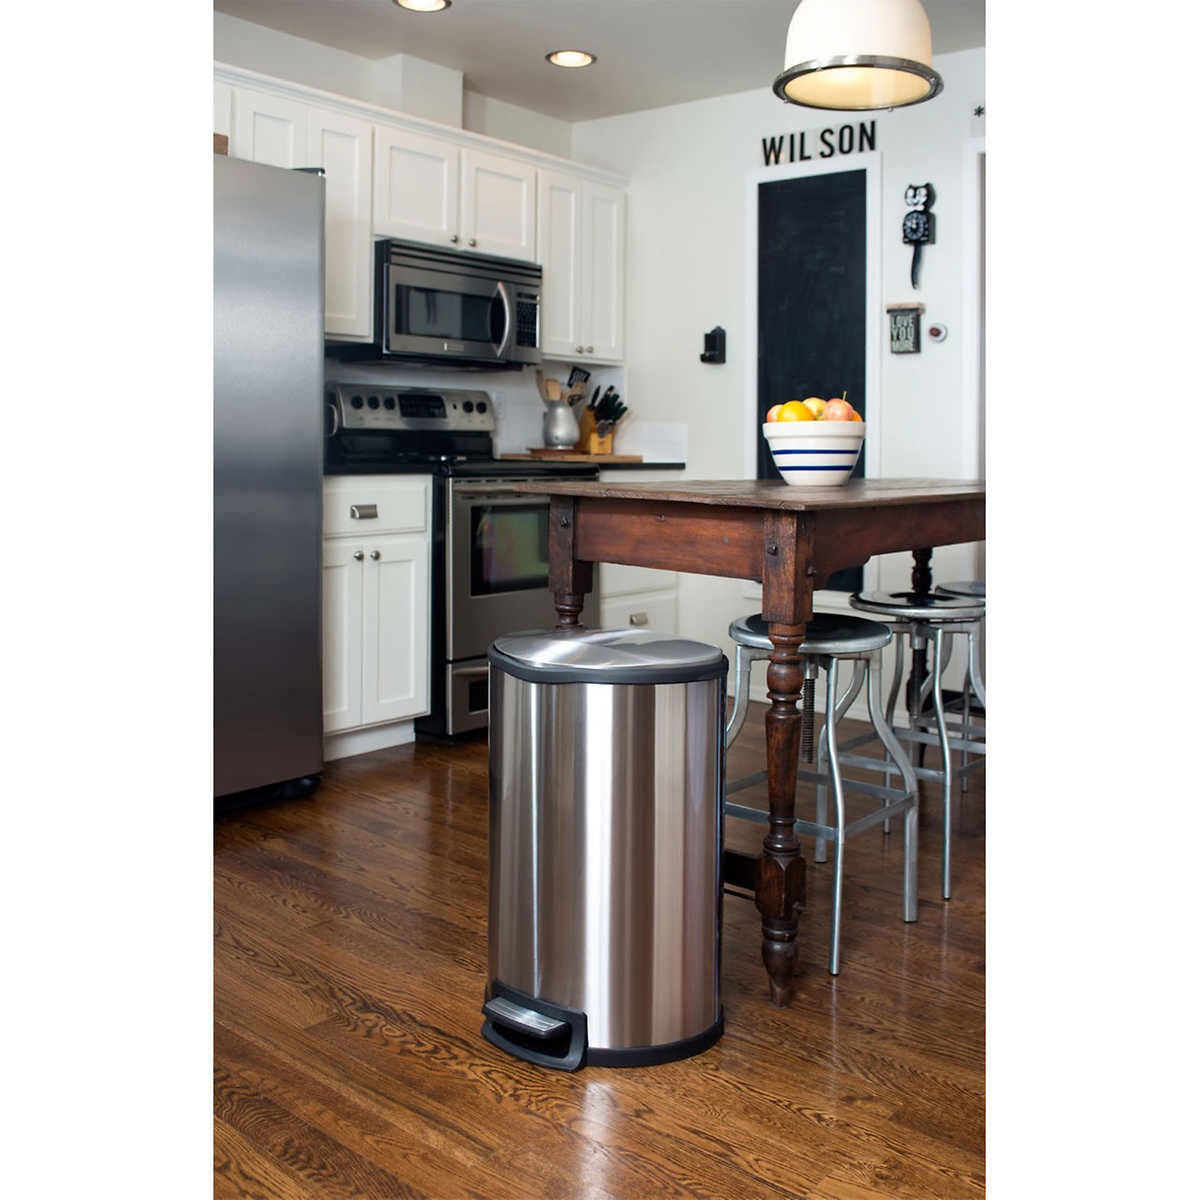 Semi Round 11.9-gallon Stainless Steel Trash Can